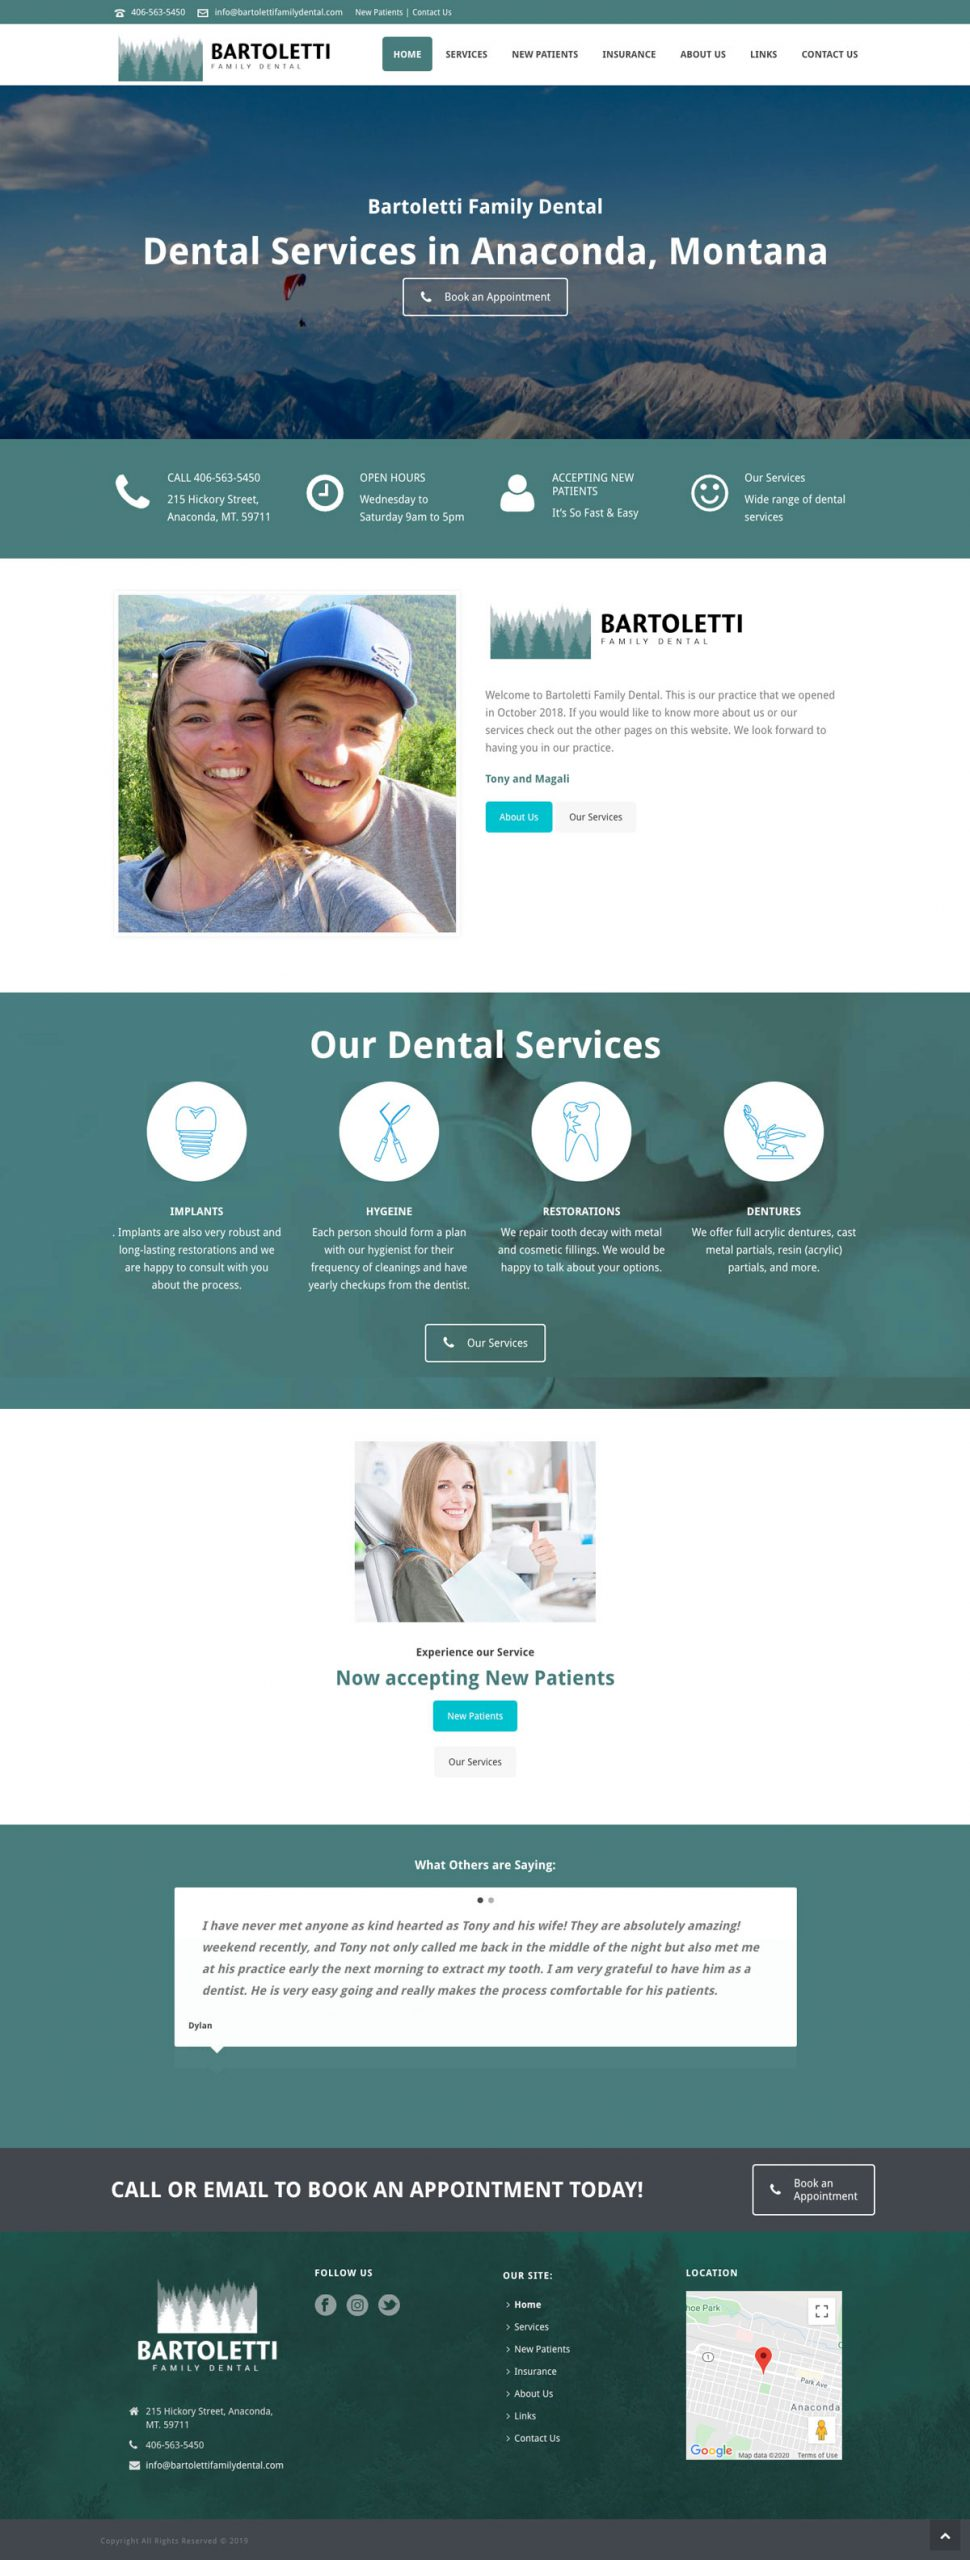 Bartoletti Family Dental